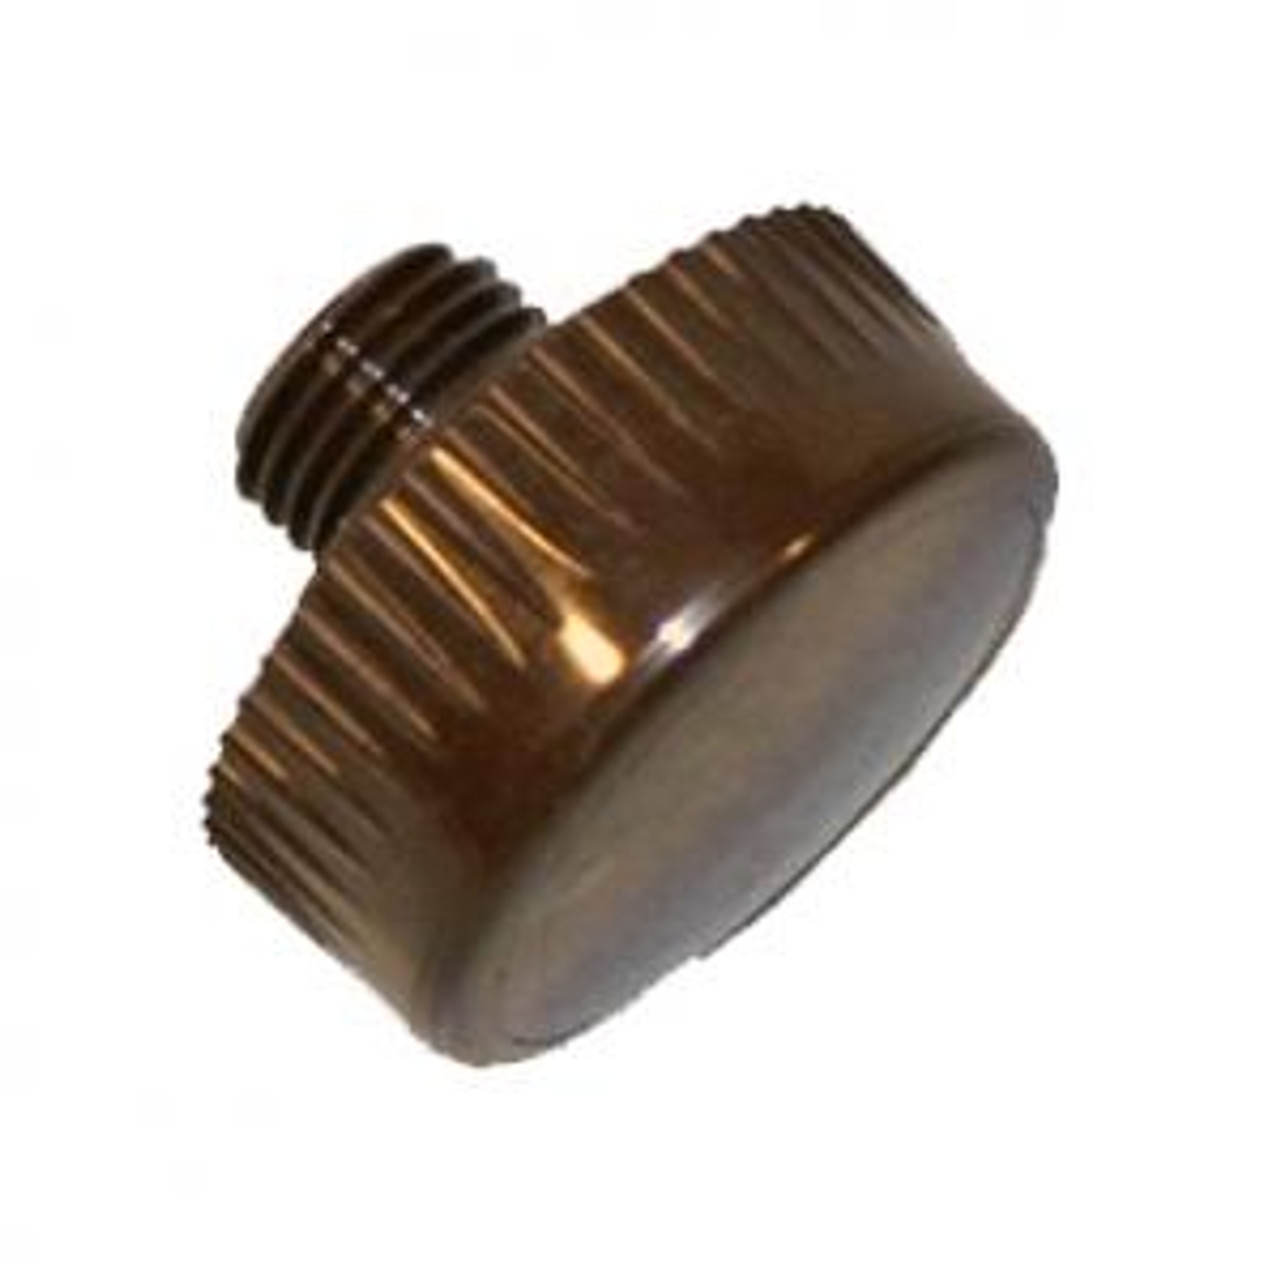 "Thor 76-710TF 1 1/4"" Tough Brown replacement tip for DB125 and NT125 hammers. One tip."